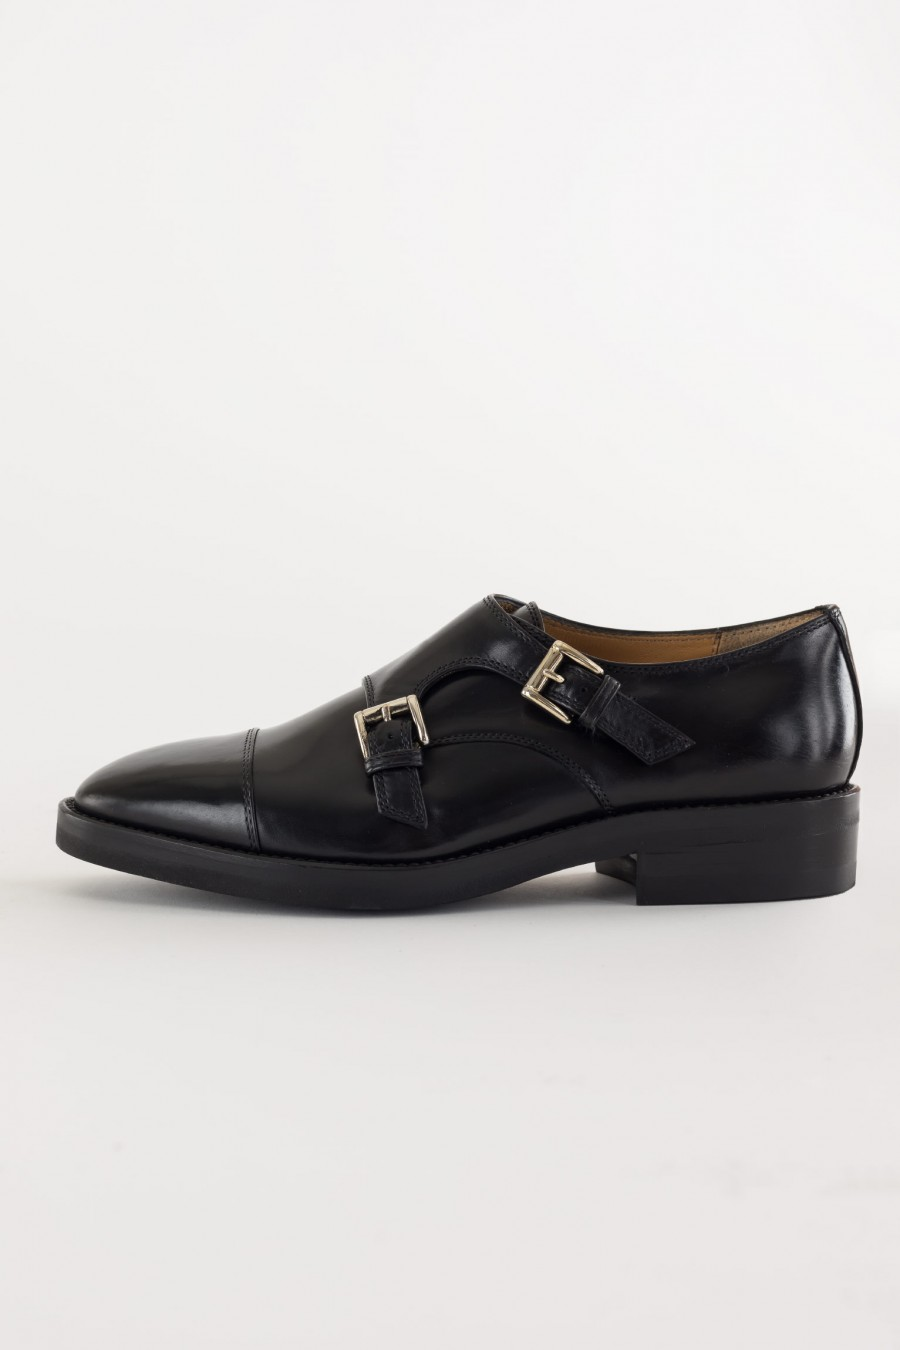 Shoes with buckle details